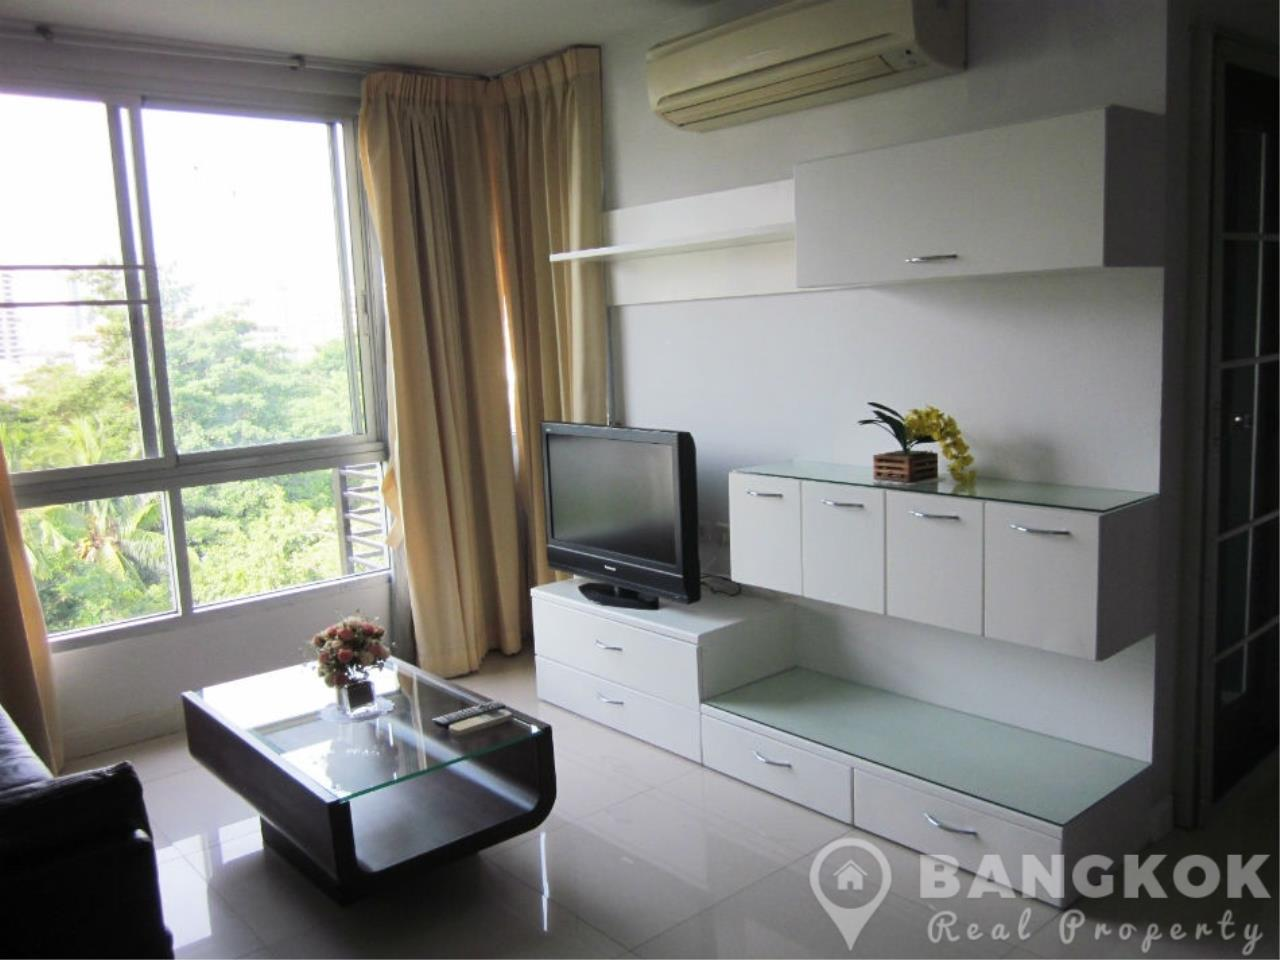 Bangkok Real Property Agency's Sathorn Plus By The Garden | Spacious High Floor 1 Bed 1 Bath 3